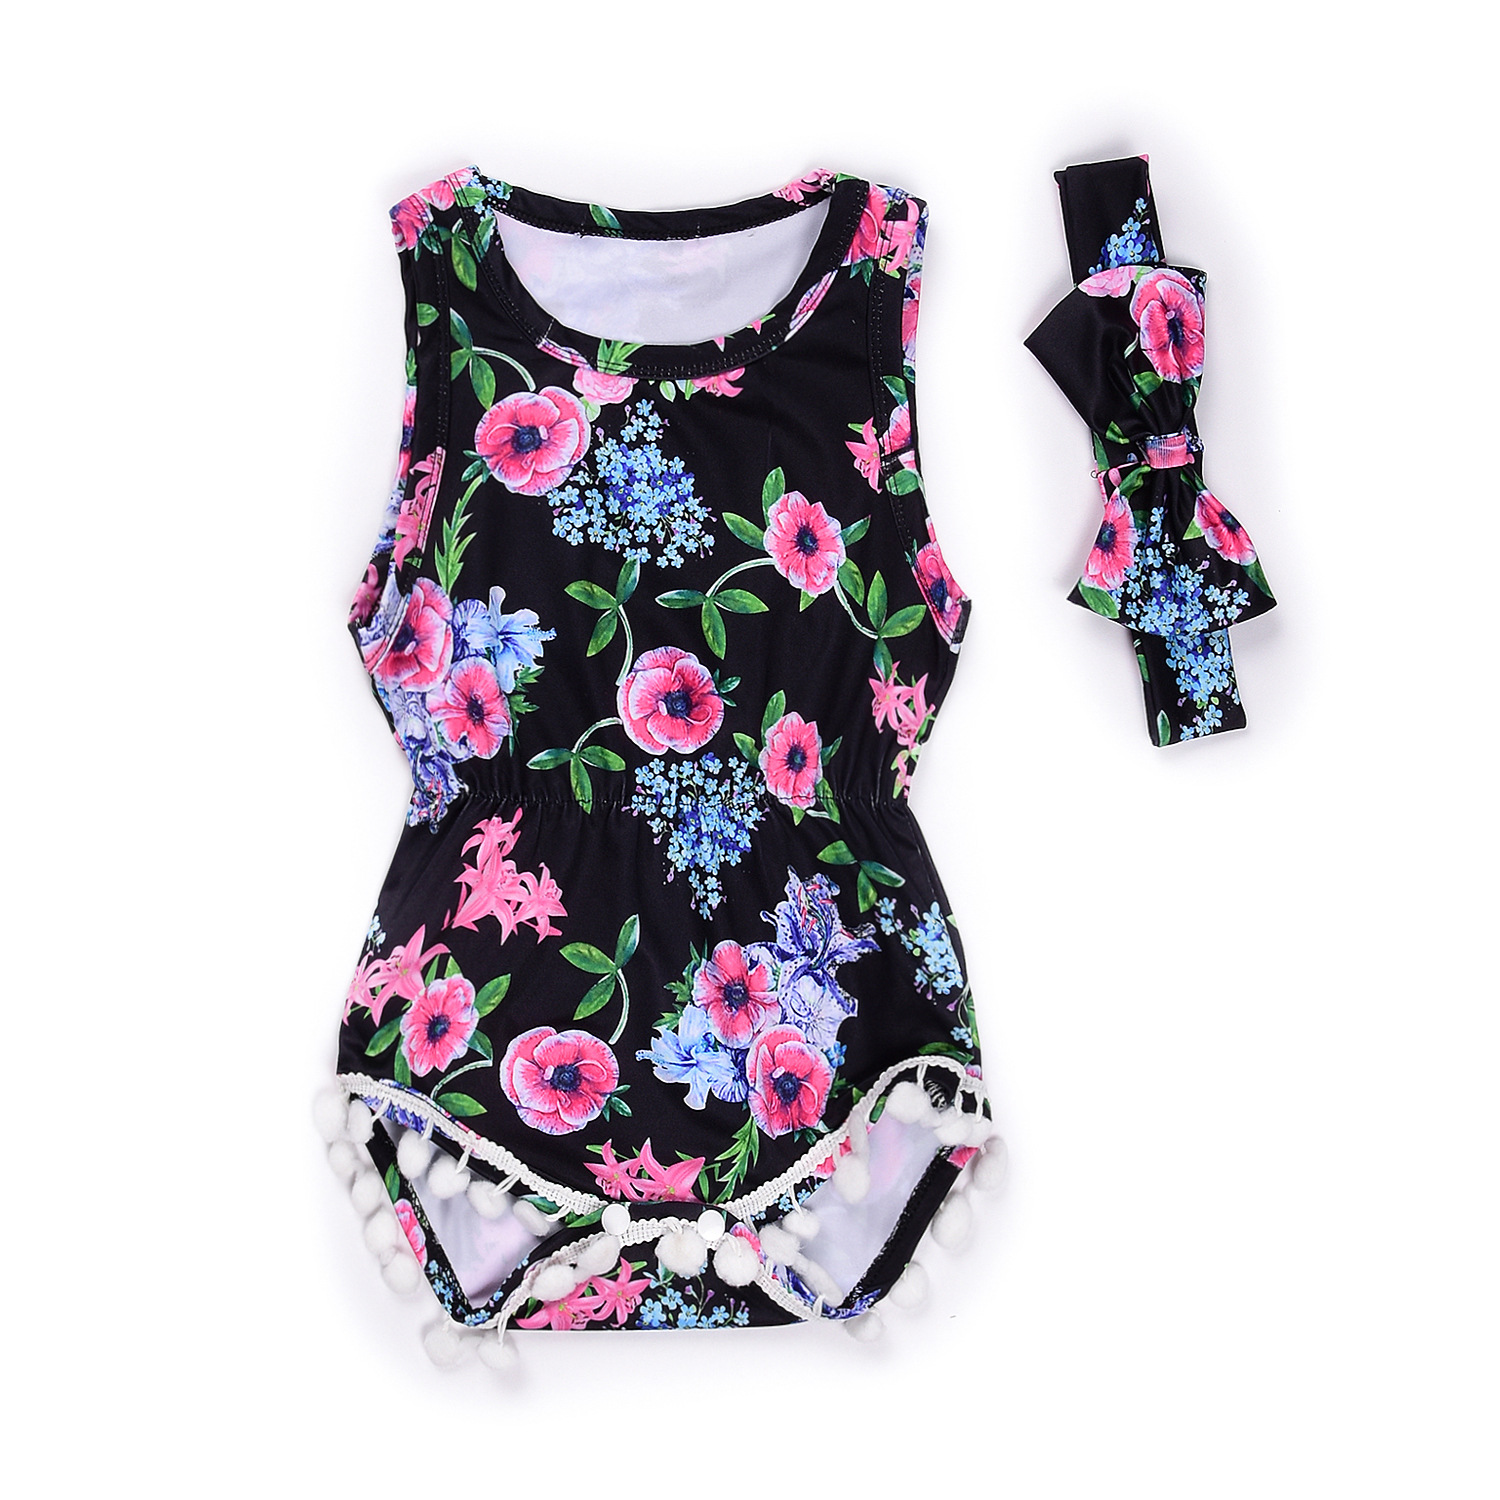 Cute Baby Floral Romper + Headband 2PCS Cotton Sleeveless Newborn Rompers Baby Onepiece Kids Clothing